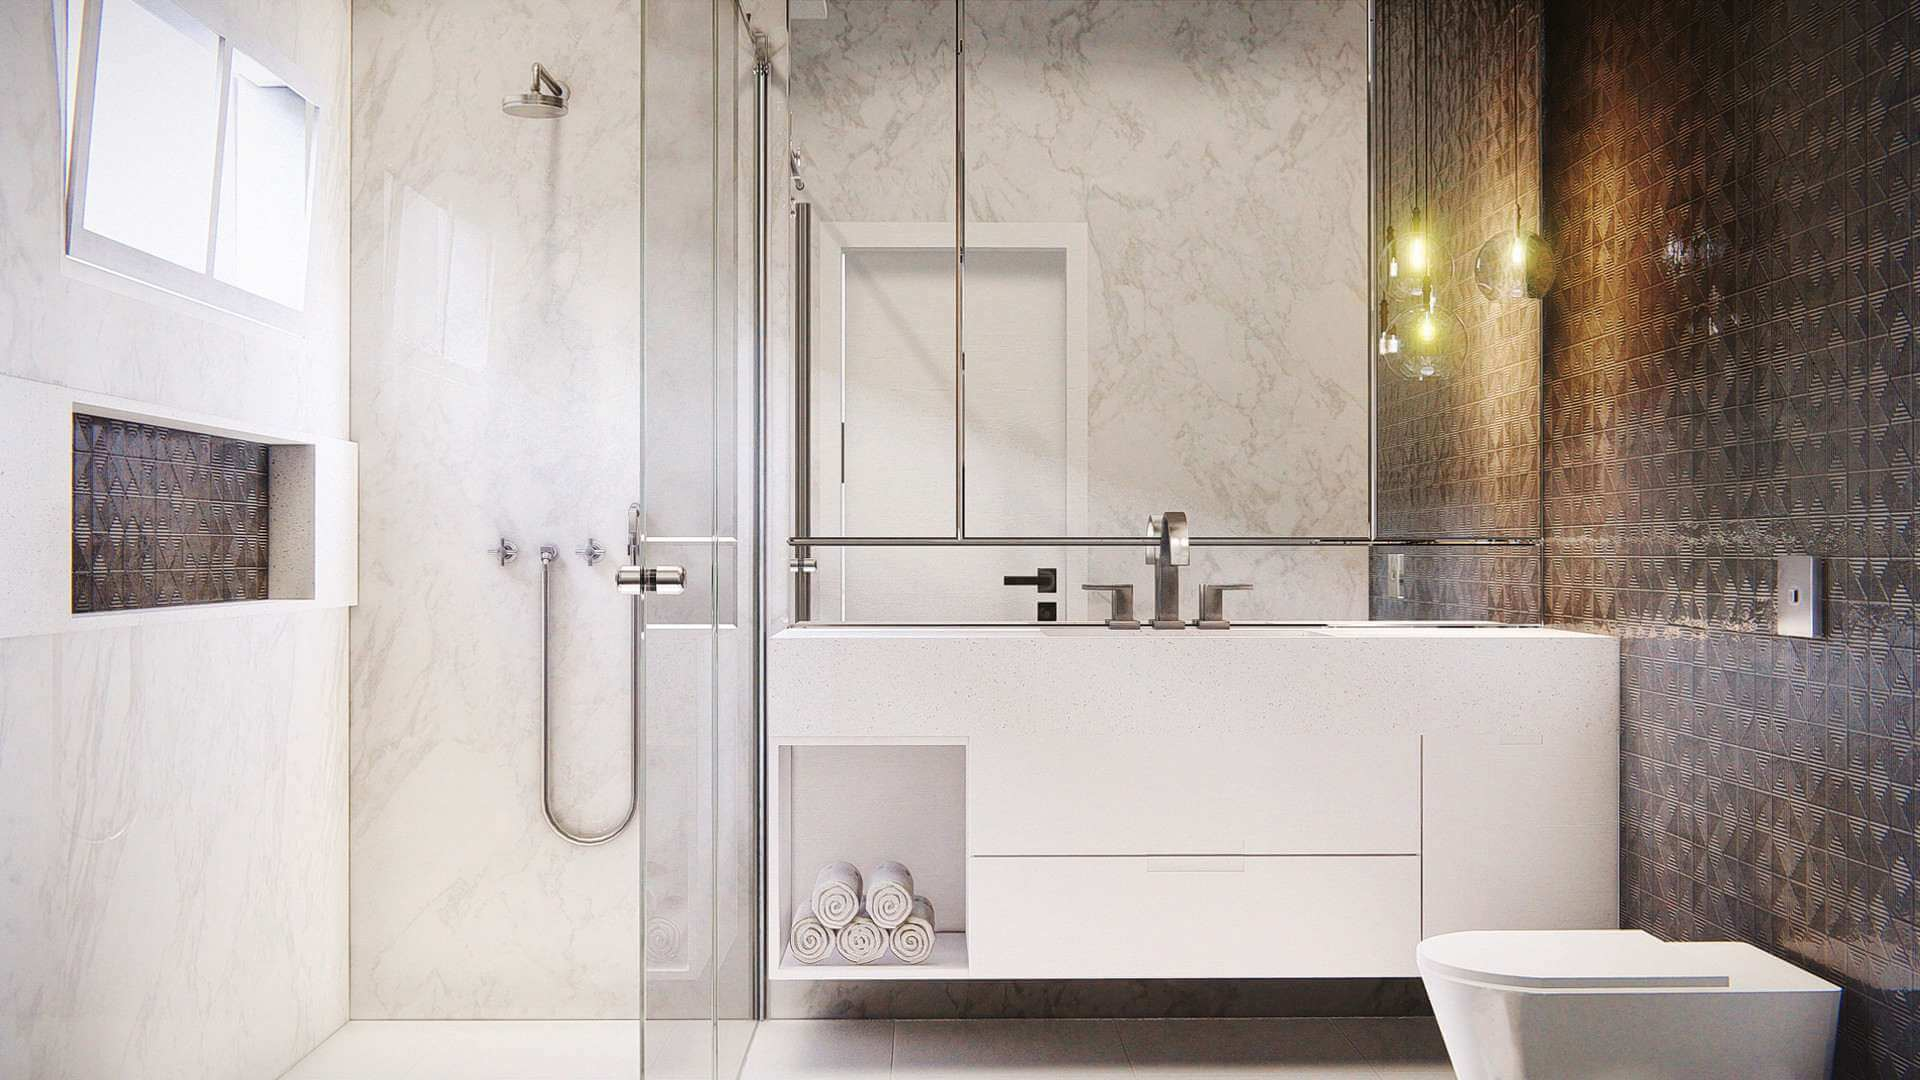 Rendering of a high-end bathroom.